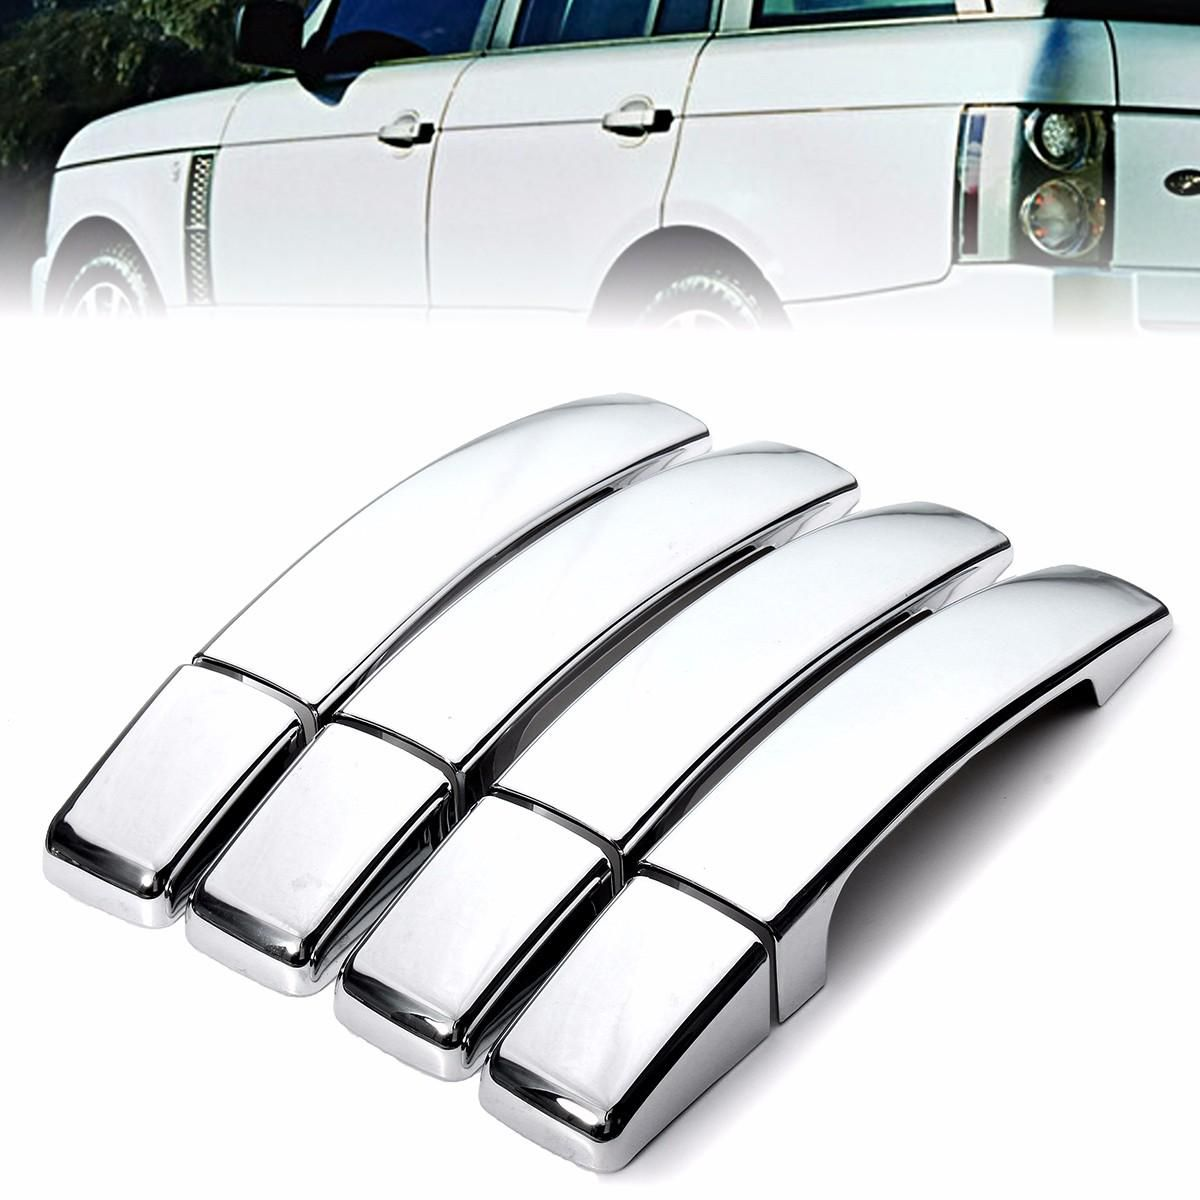 UMT US$29.56 8 Pcs ABS Chrome Door Handle Covers for Range Rover Sport Found 3/4 Freelander 2